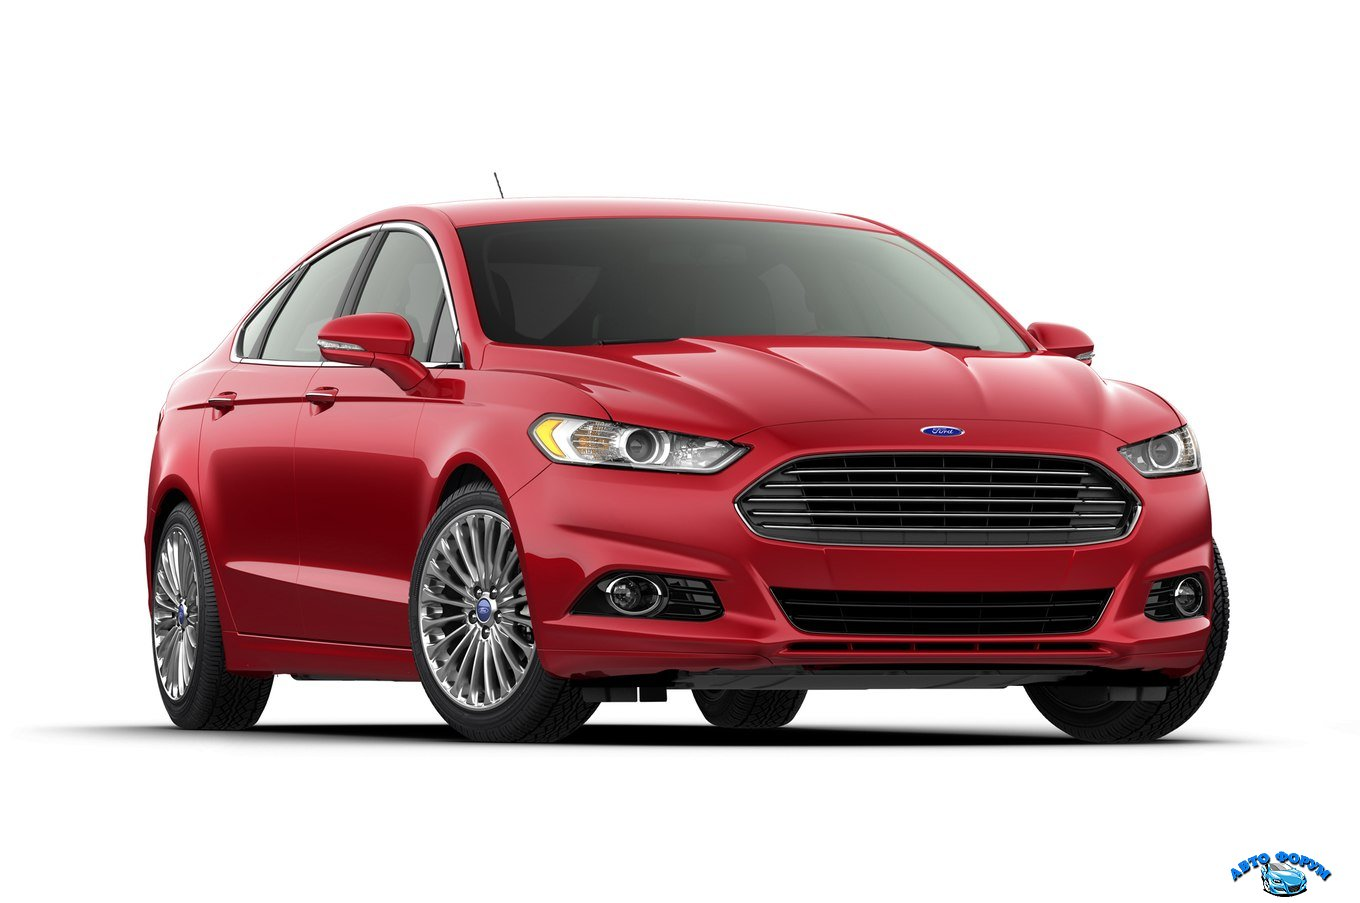 2015-Ford-Fusion-front-three-quarter-02.jpg